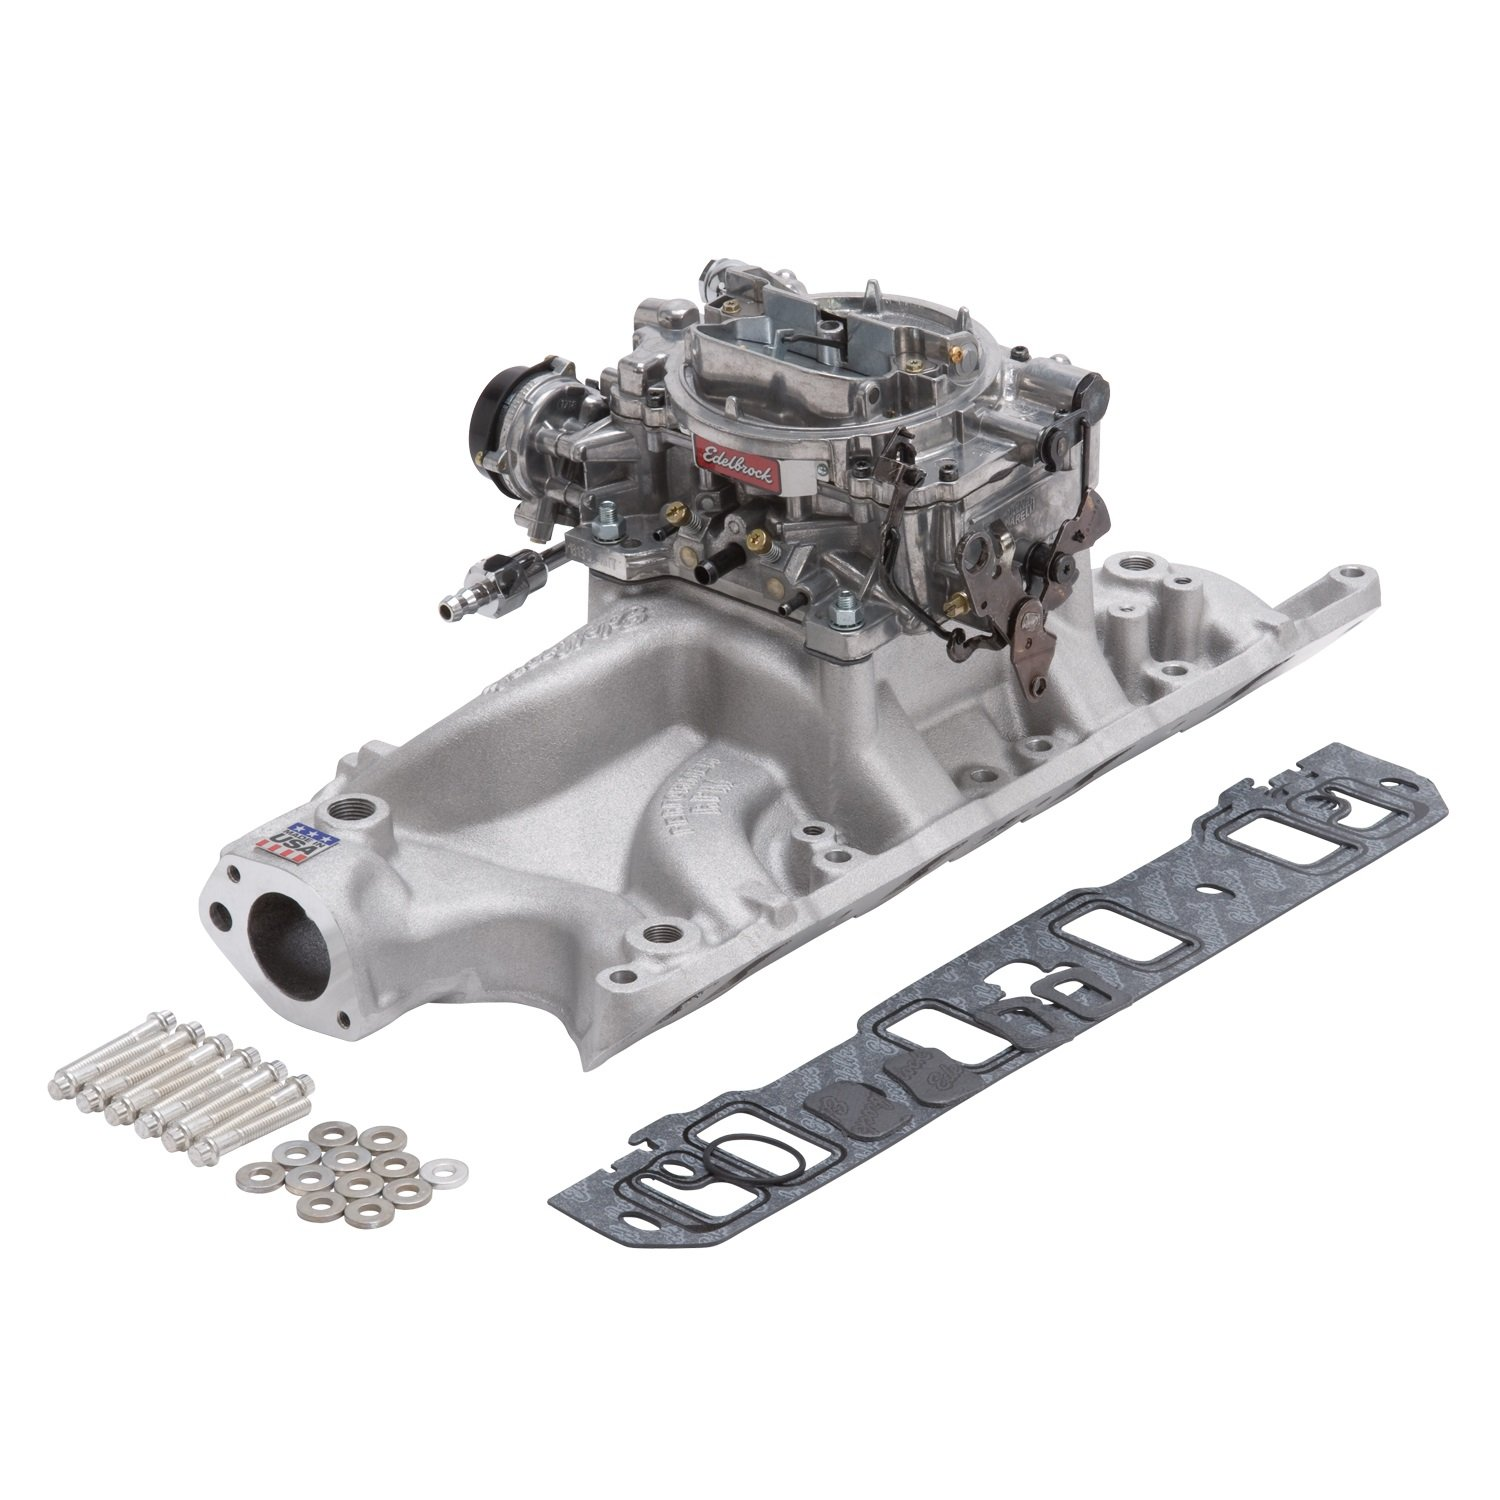 Edelbrock 2032 Single-Quad Manifold And Carb Kit Performer RPM Manifold w/800cfm Thunder Series Carb Carb/Fuel Line/Intake Bolts/Gaskets Natural Finish For Small Block Ford Single-Quad Manifold And Carb Kit by Edelbrock (Image #1)